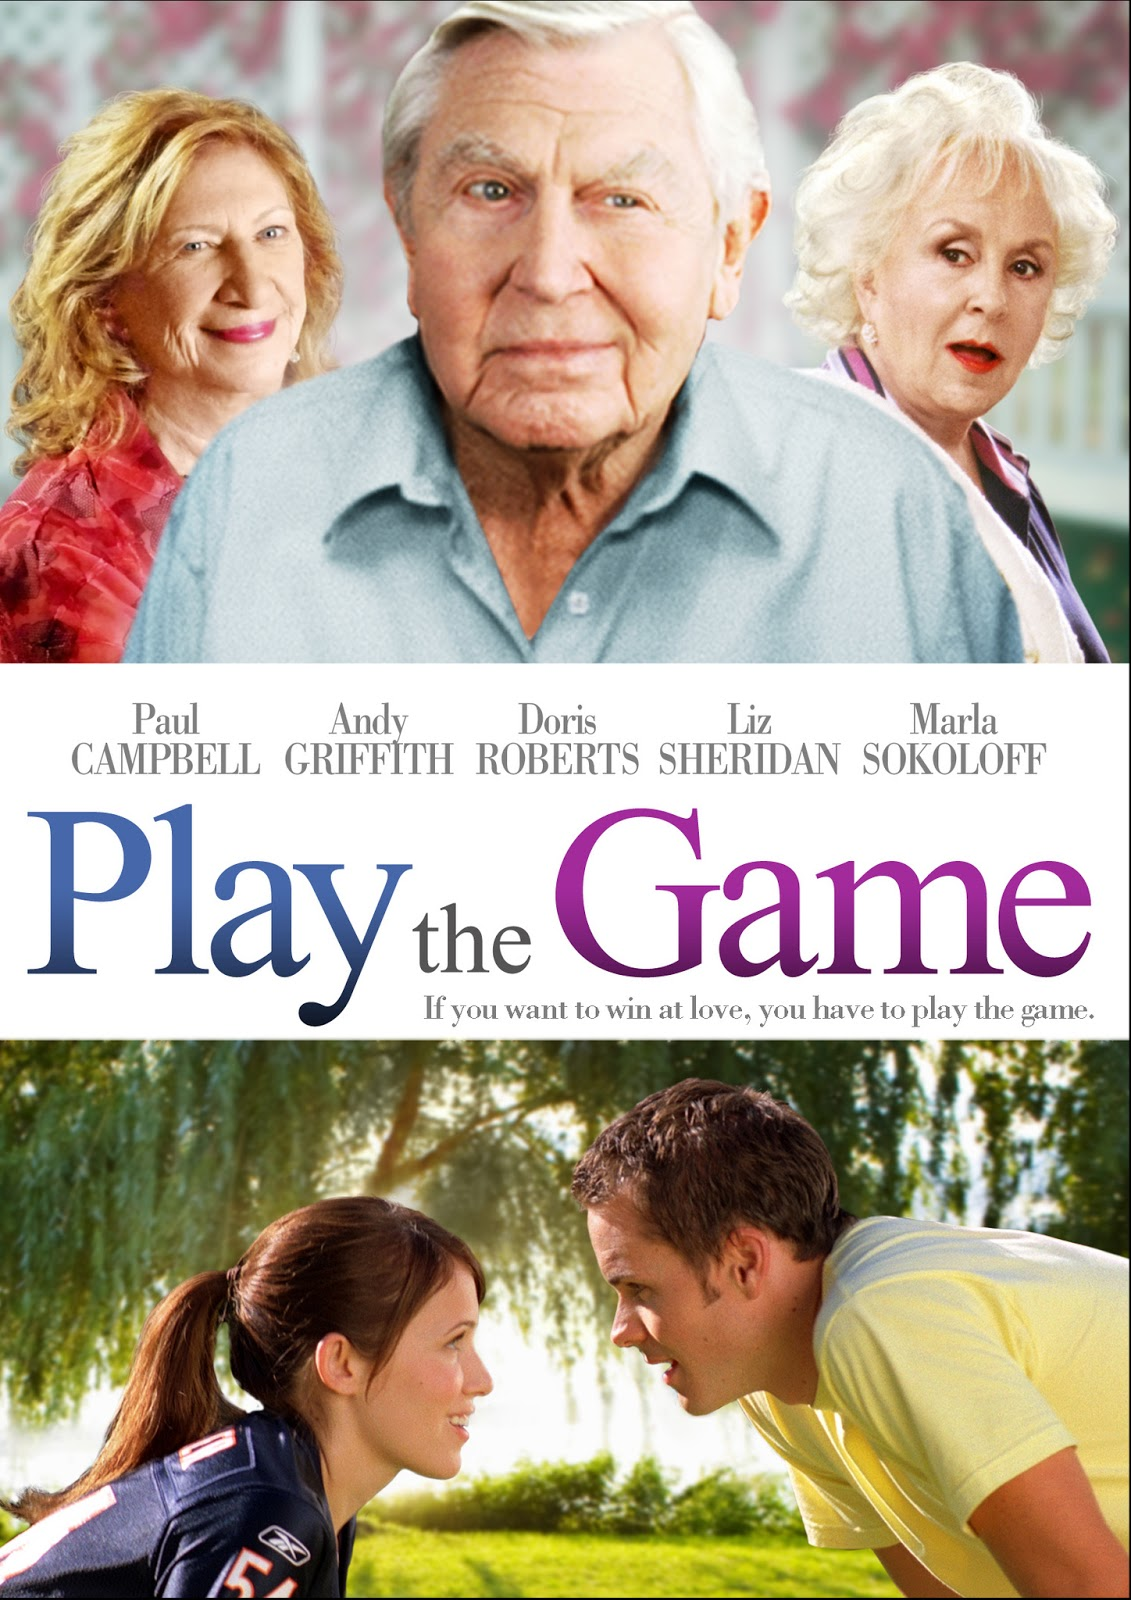 Play the Game 2009 - Full (HD)